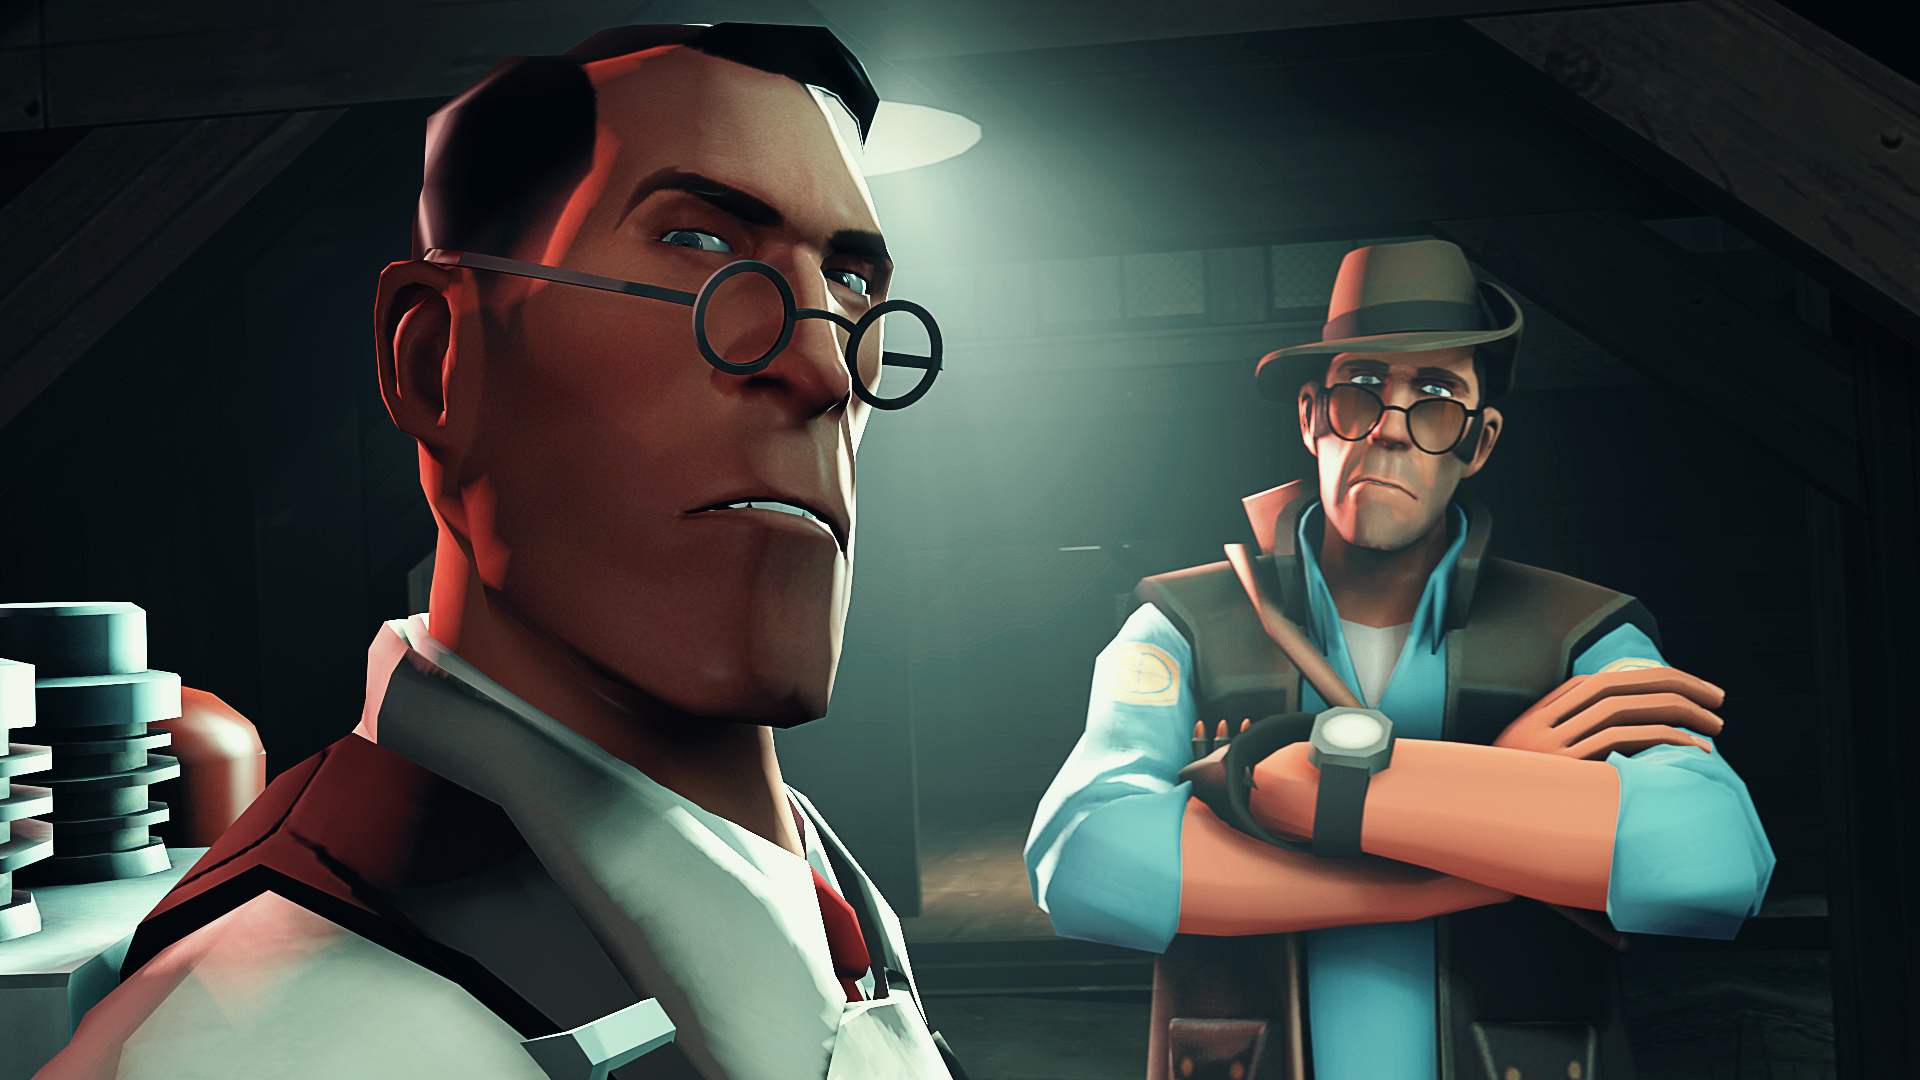 Sfm What Re You Lookin At Games Teamfortress2 Steam Tf2